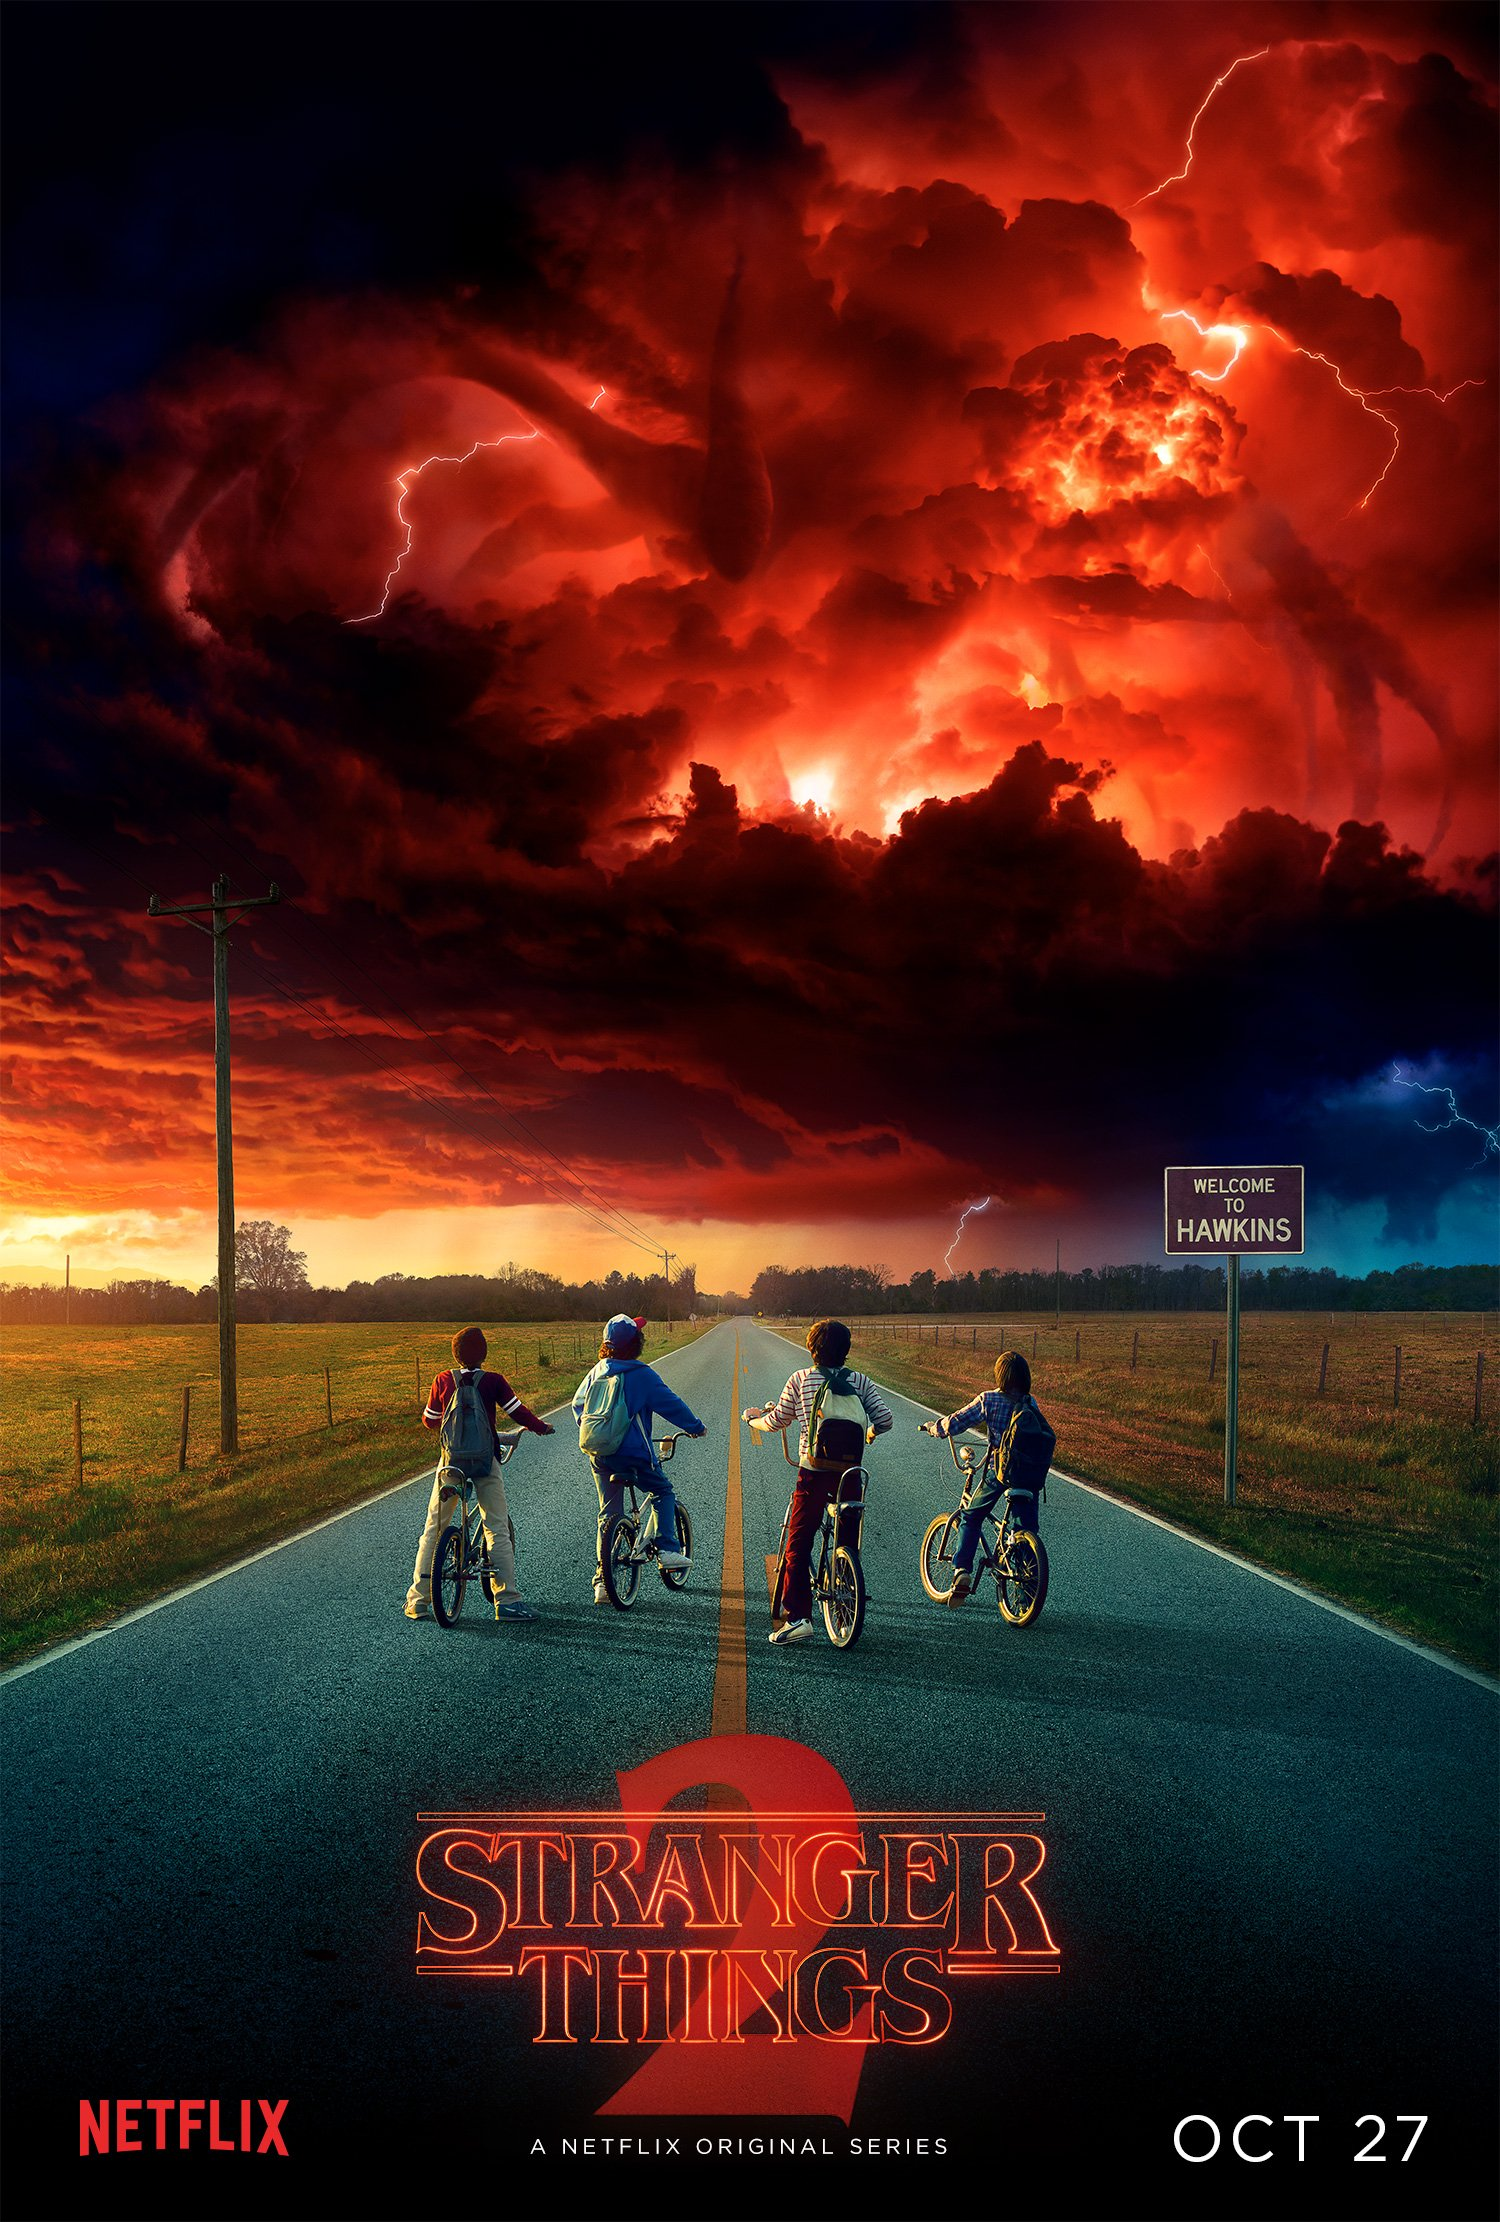 "- ""Stranger Things"" returns to Netflix for their second season on October 27th. October 27th is the same date that the first season was released, so it's been a long time coming for some people who finished the show in one day."